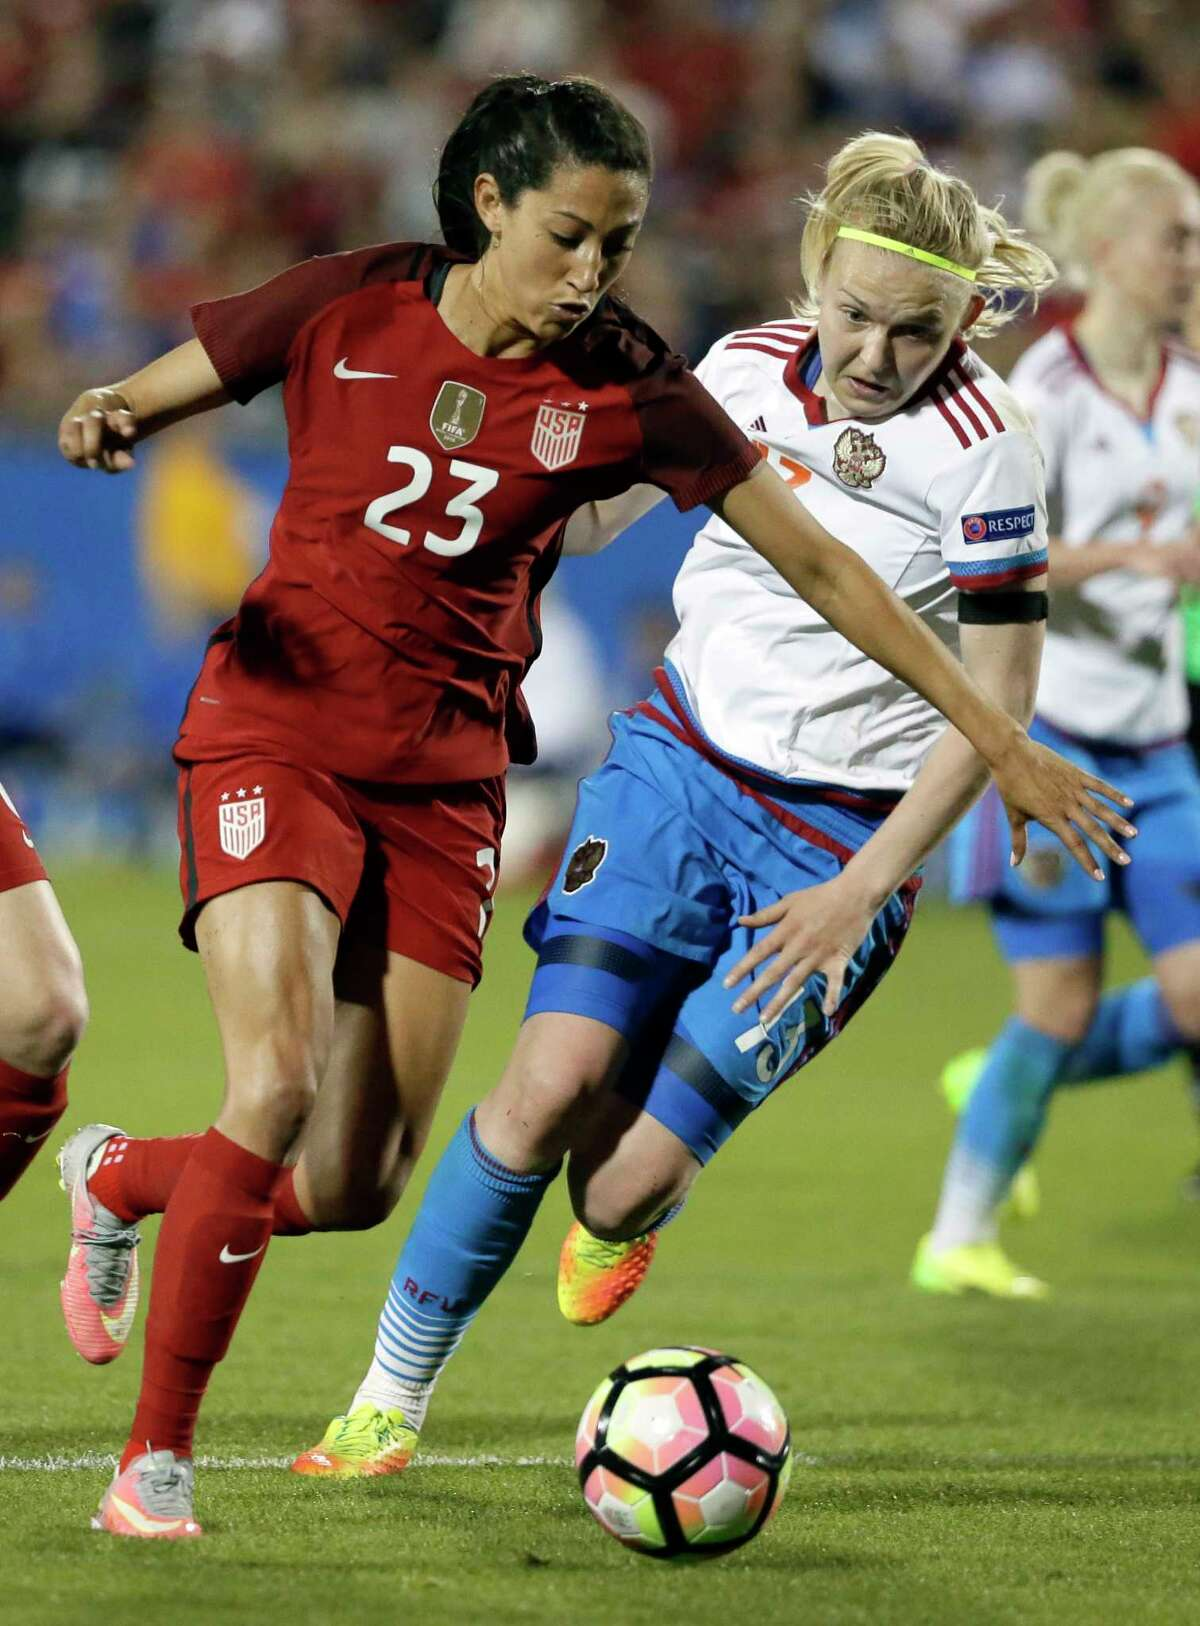 The Dash acquired U.S. national team midfielder Christen Press in a trade with the Chicago Red Stars during Thursday's NWSL Draft.